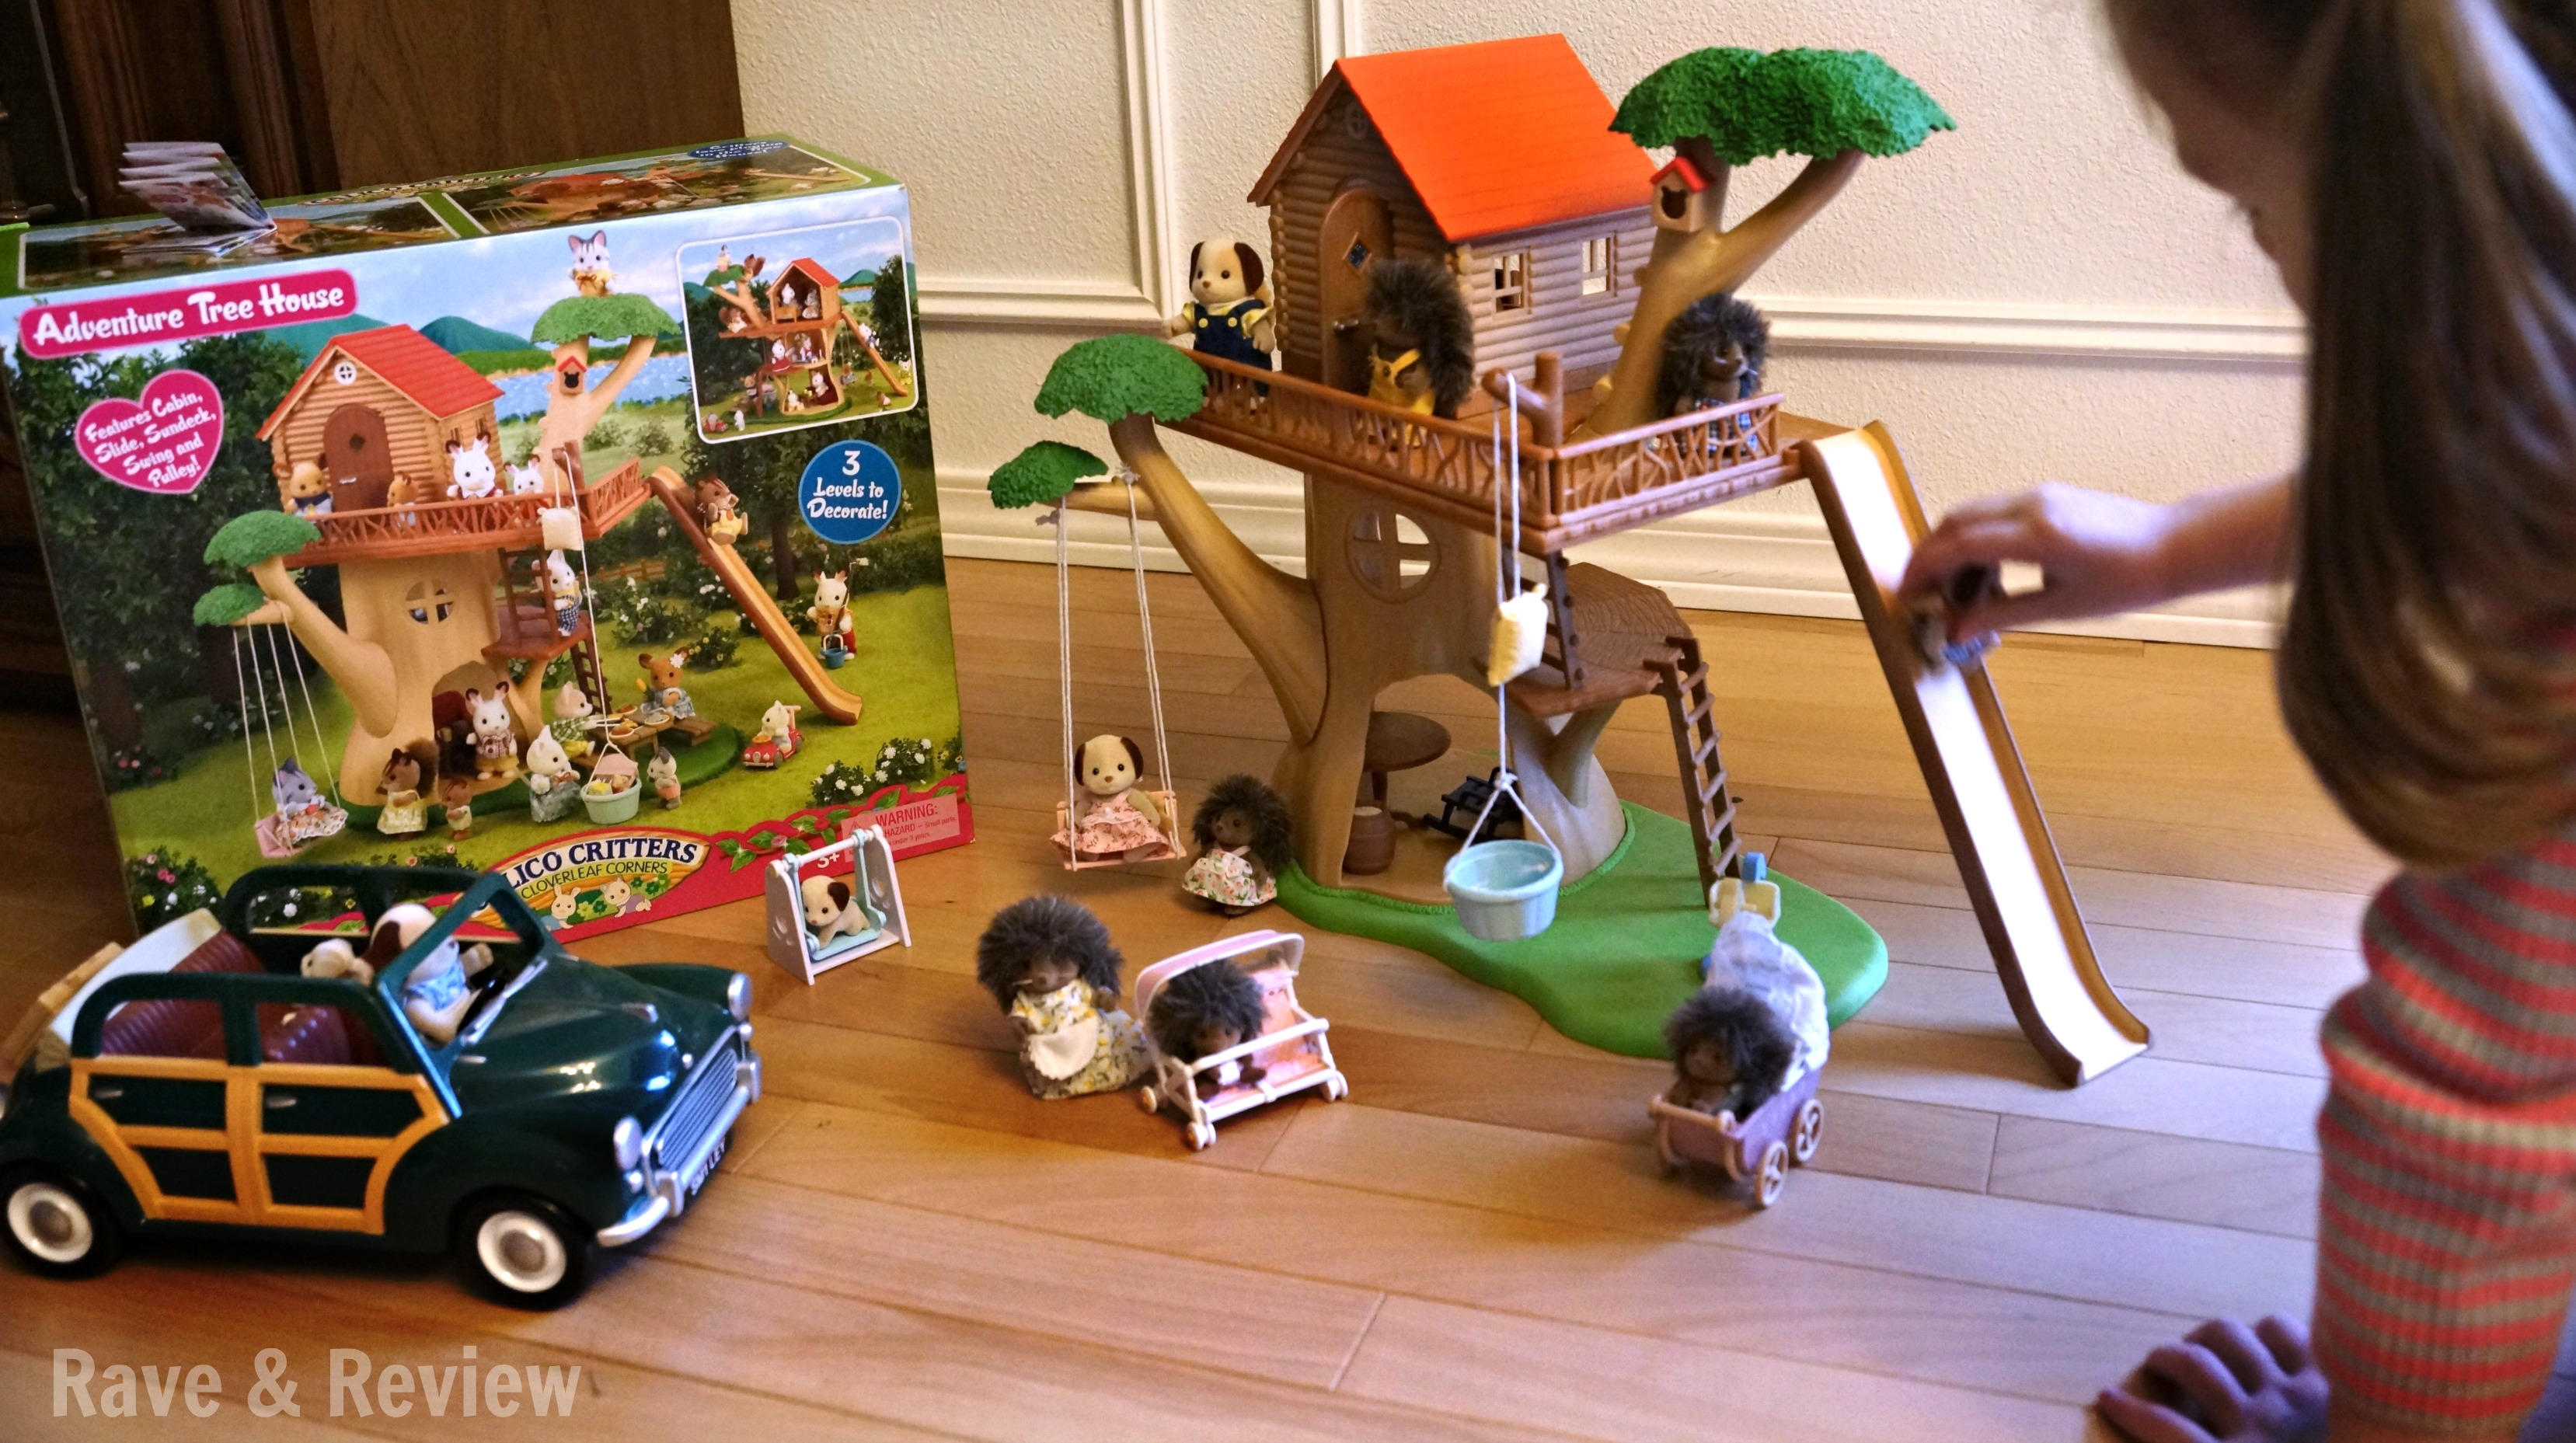 Luxurious Calico Critters Treehouse Want To Be A Gift Giver This Holiday Try Calico Critters Large Treehouse Calico Critters Treehouse Toys R Us baby Calico Critters Treehouse